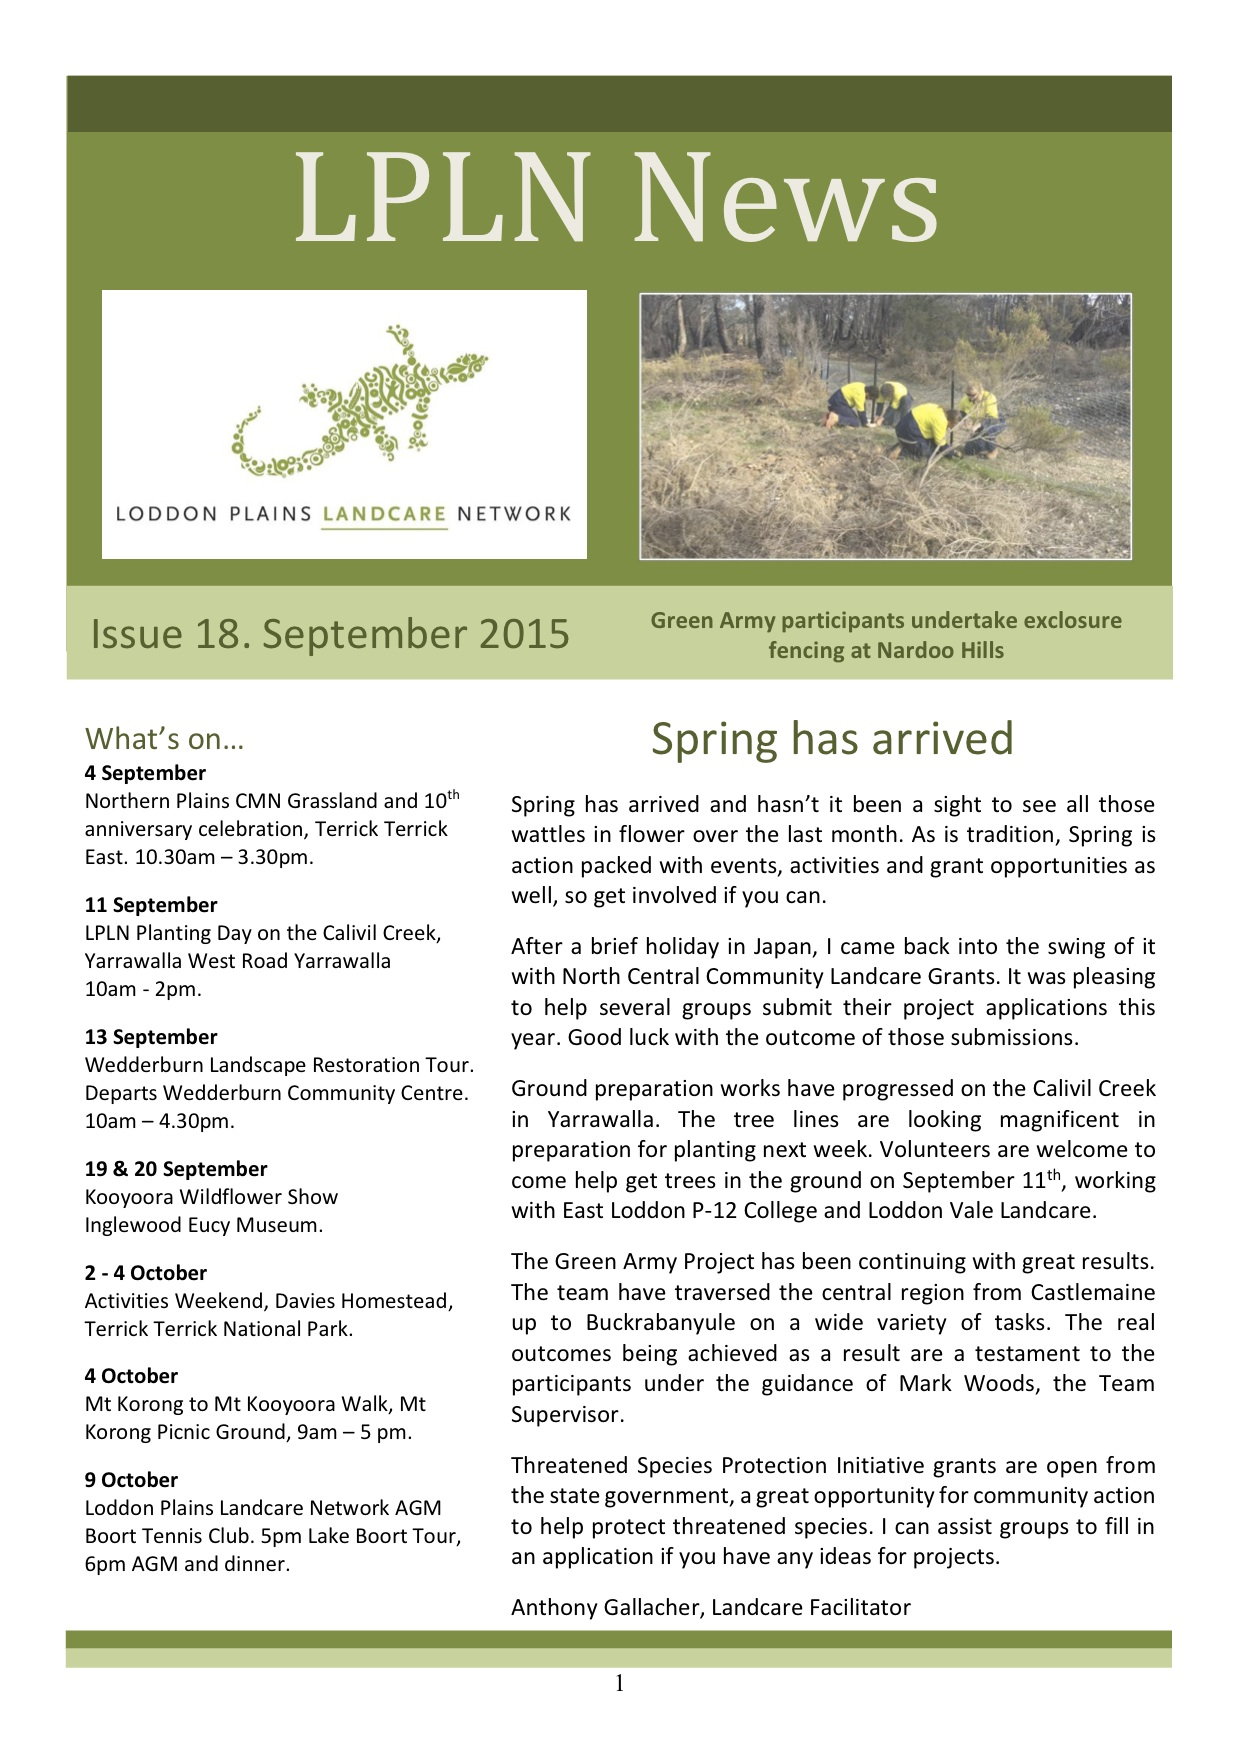 LPLN Newsletter April 2015